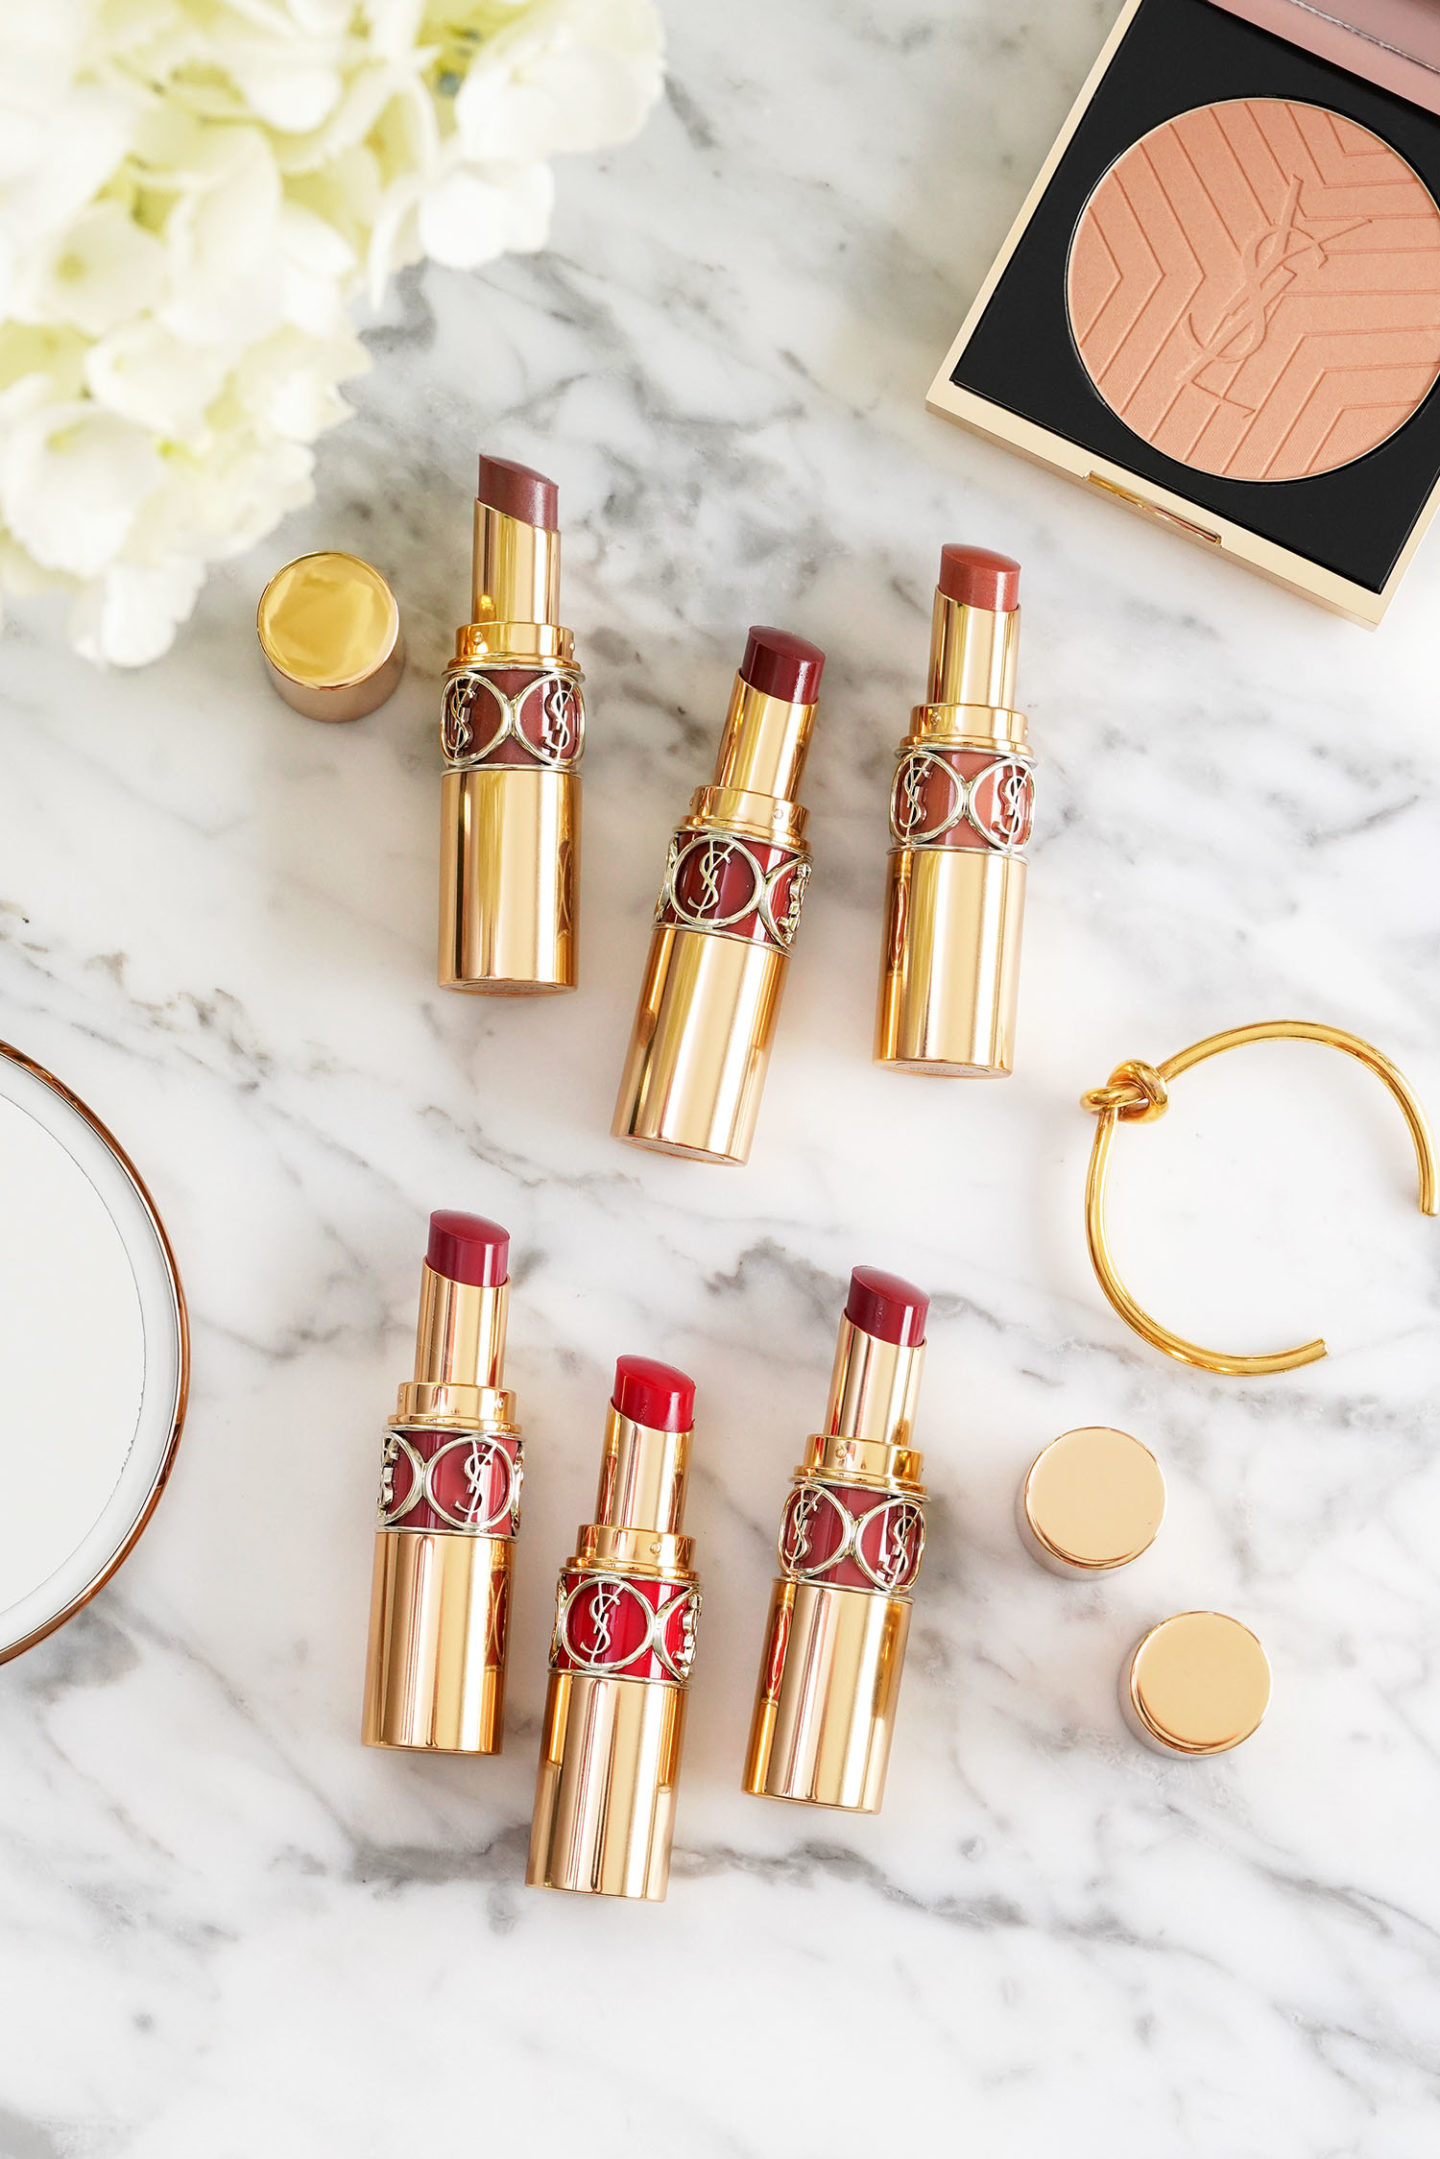 New YSL Rouge Volupte Shine Lipsticks